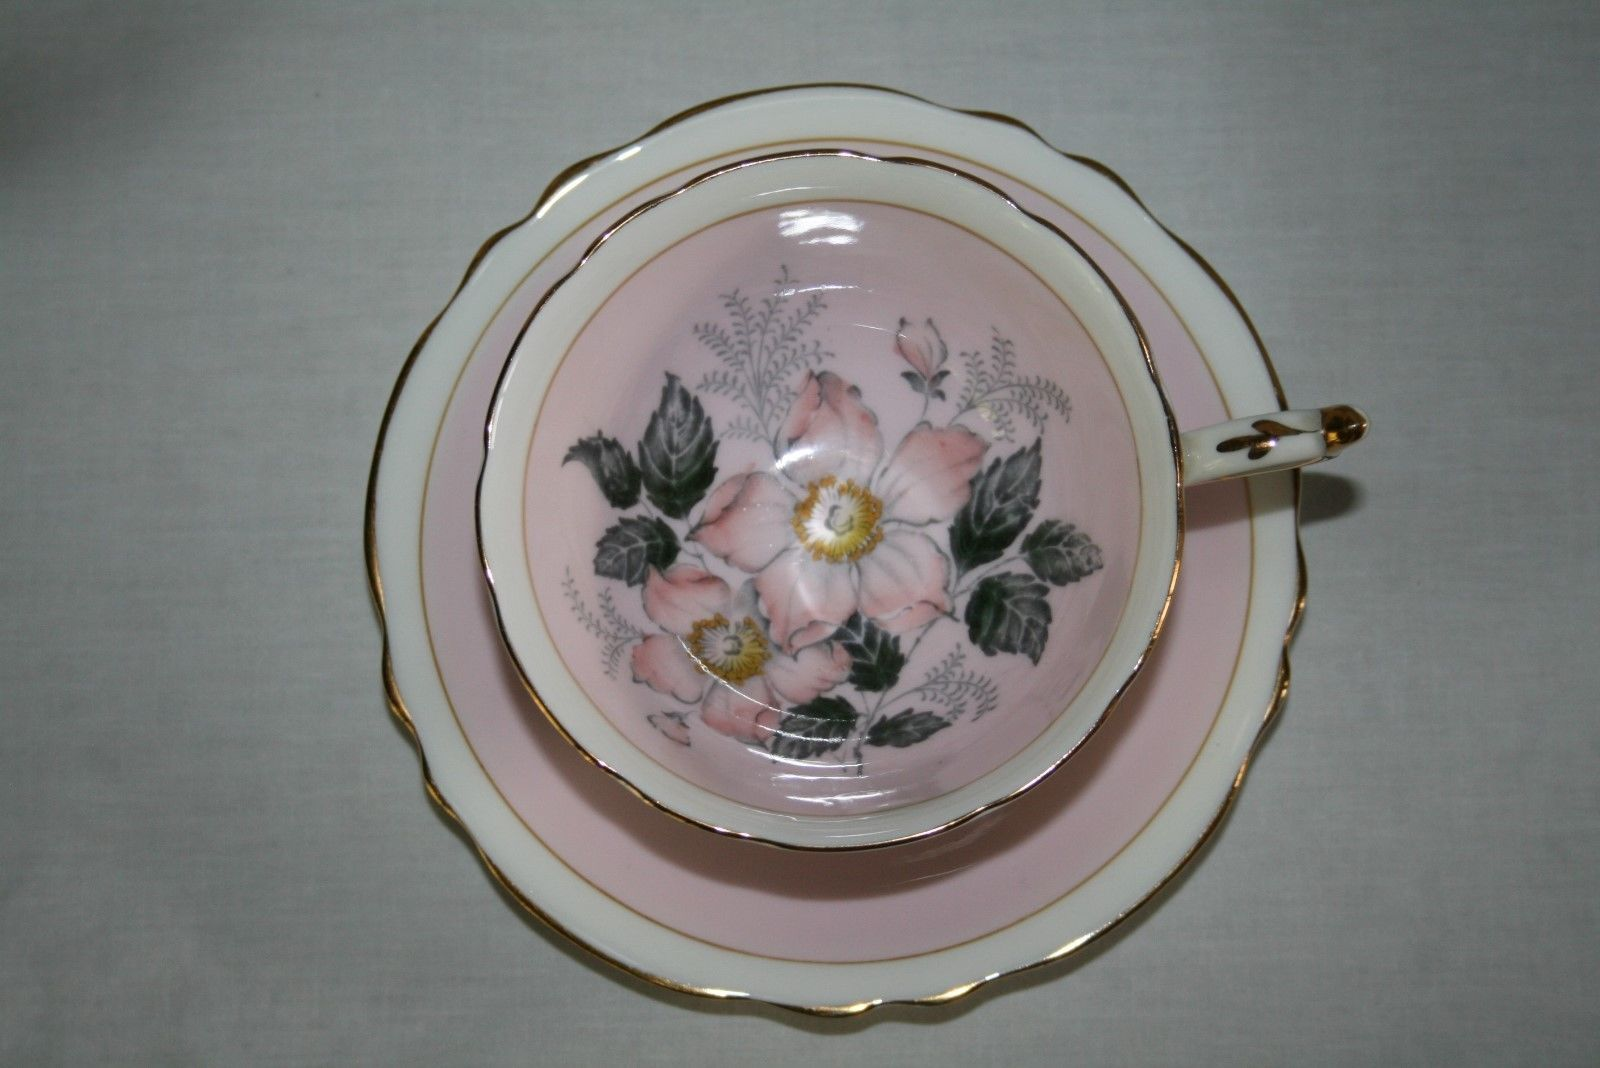 Paragon A702 Pastel Pink Tea Cup & Saucer Set with Peach Grey Flowers,Gold Trim